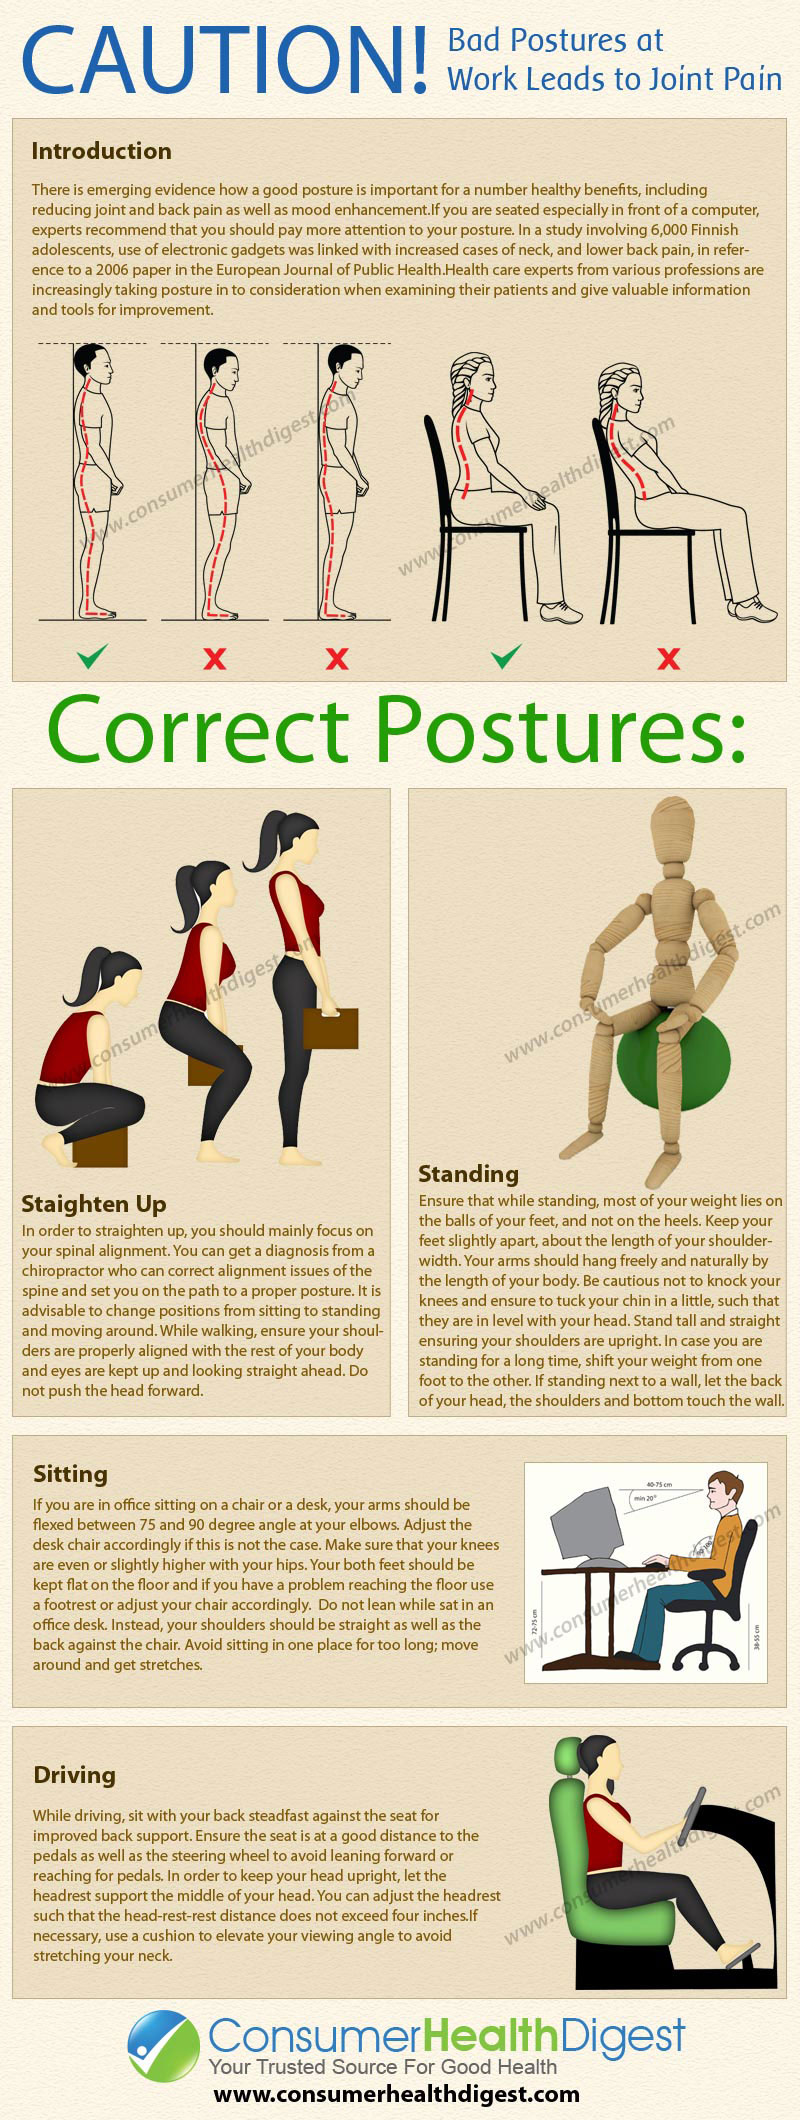 Bad Postures at Work Leads to Joint Pain